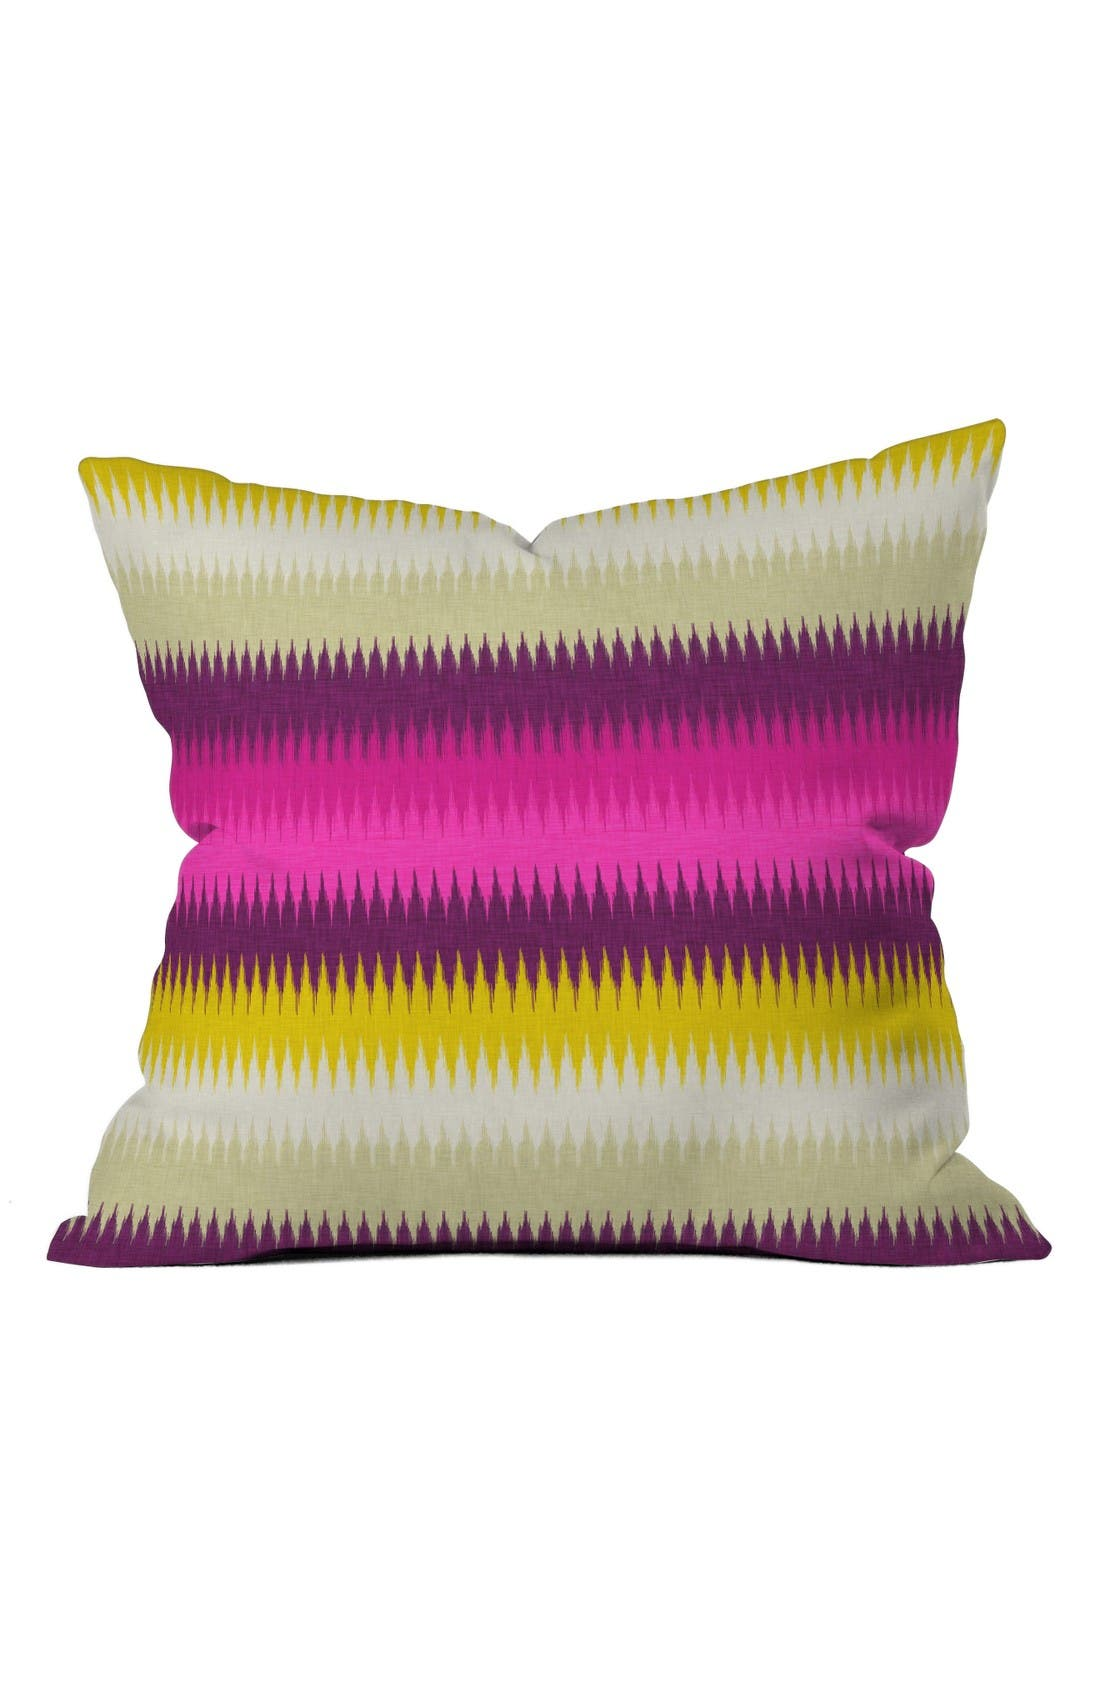 Alternate Image 1 Selected - Deny Designs Bright Stripe Pillow